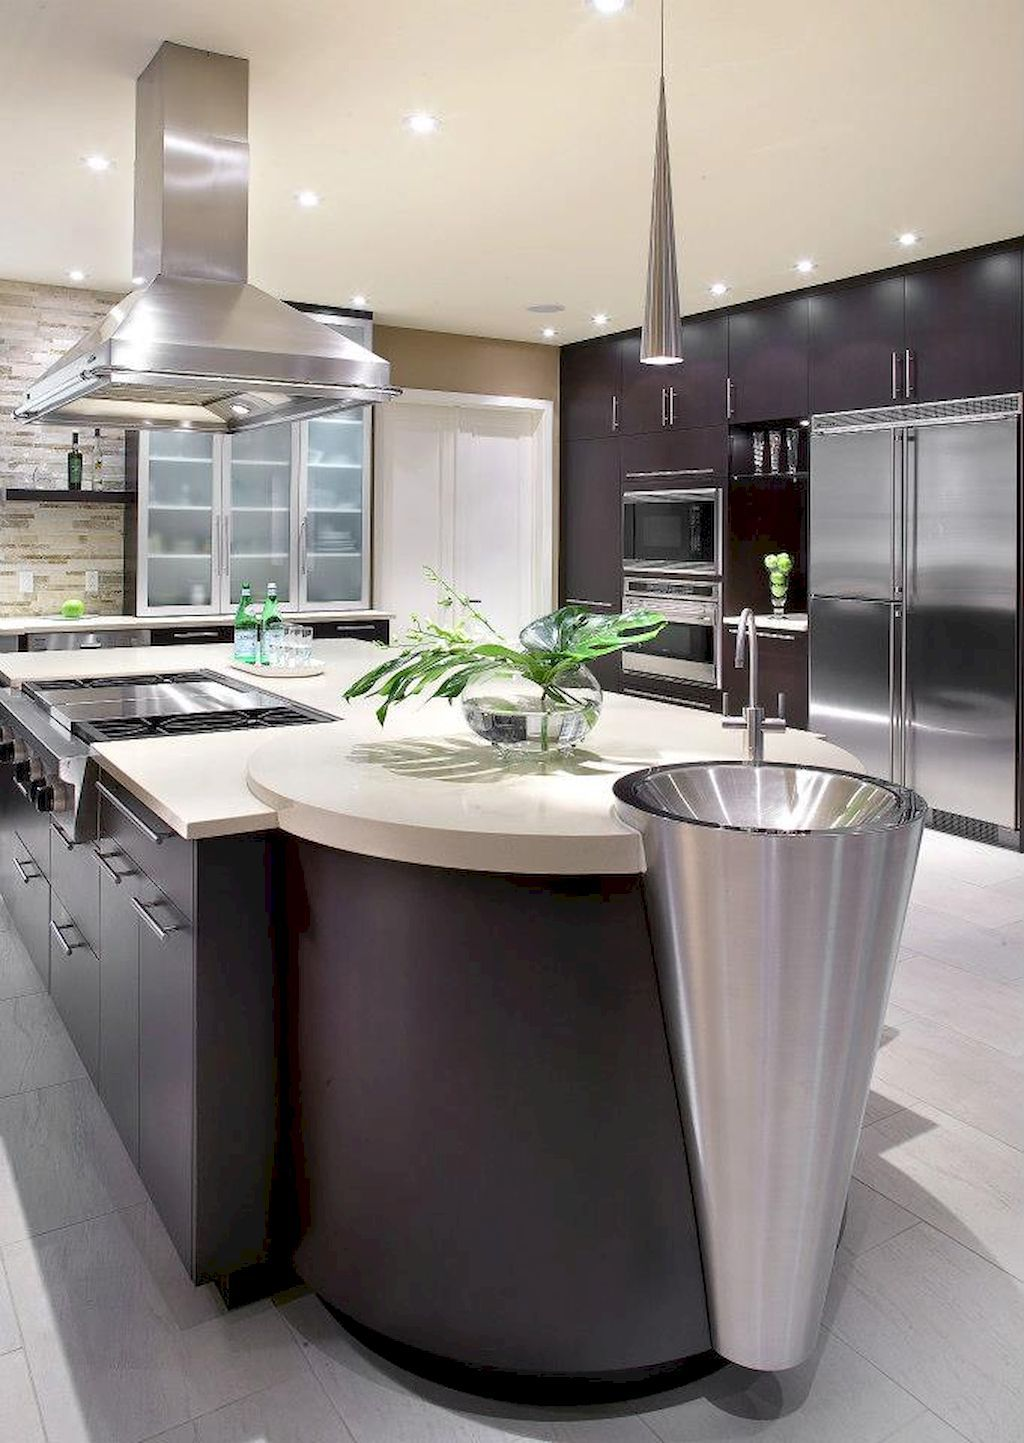 adorable 60 awesome modern kitchens ideas remodeling on a on awesome modern kitchen design ideas id=80418